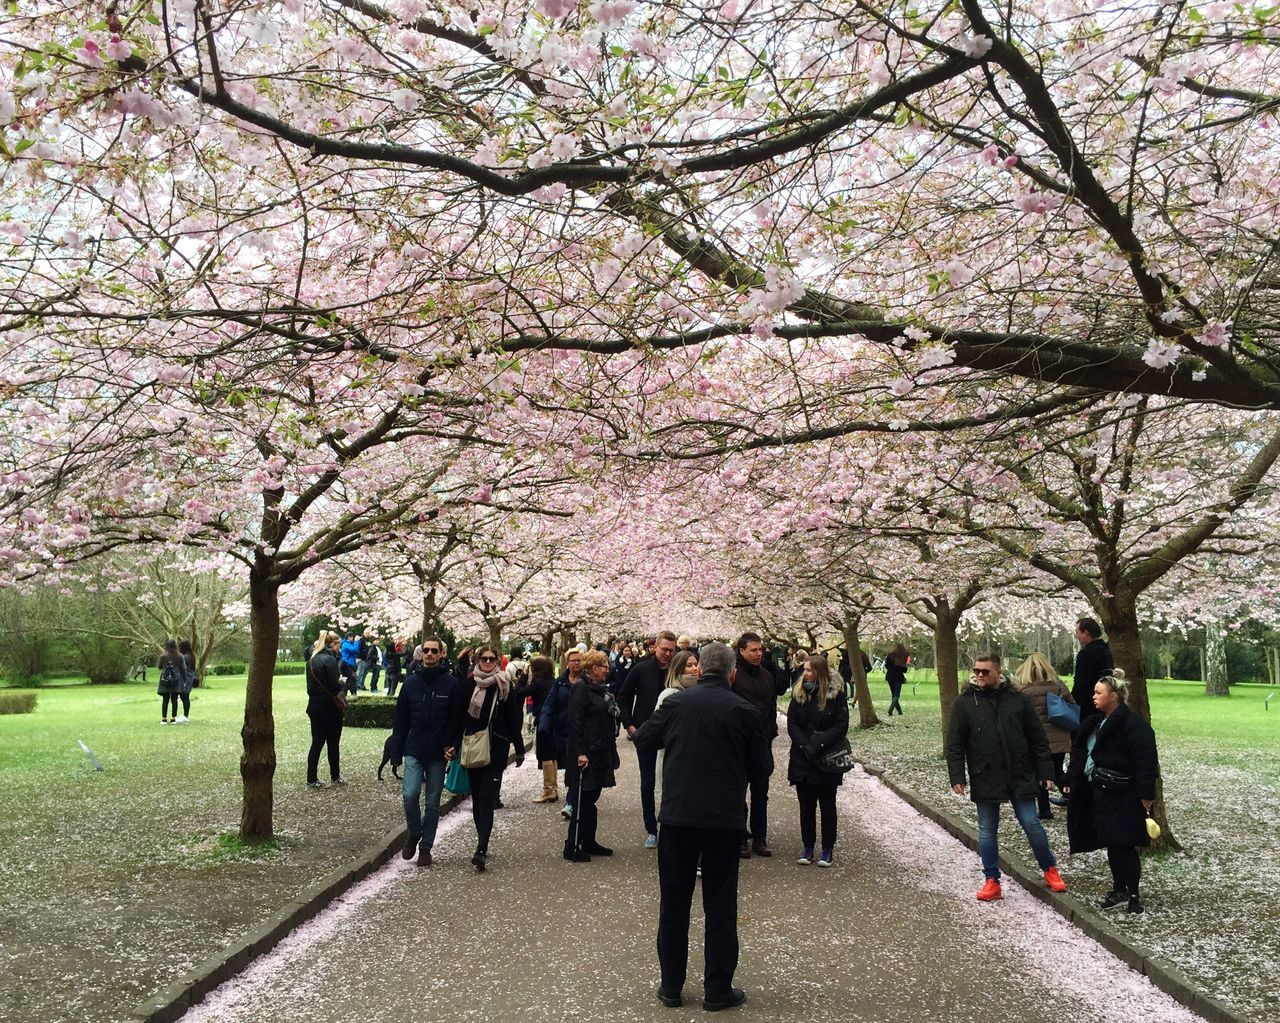 tree, cherry blossom, blossom, flower, cherry tree, branch, springtime, beauty in nature, nature, pink color, growth, large group of people, real people, outdoors, day, men, park - man made space, road, full length, freshness, fragility, travel destinations, grass, vacations, women, sky, flower head, adult, people